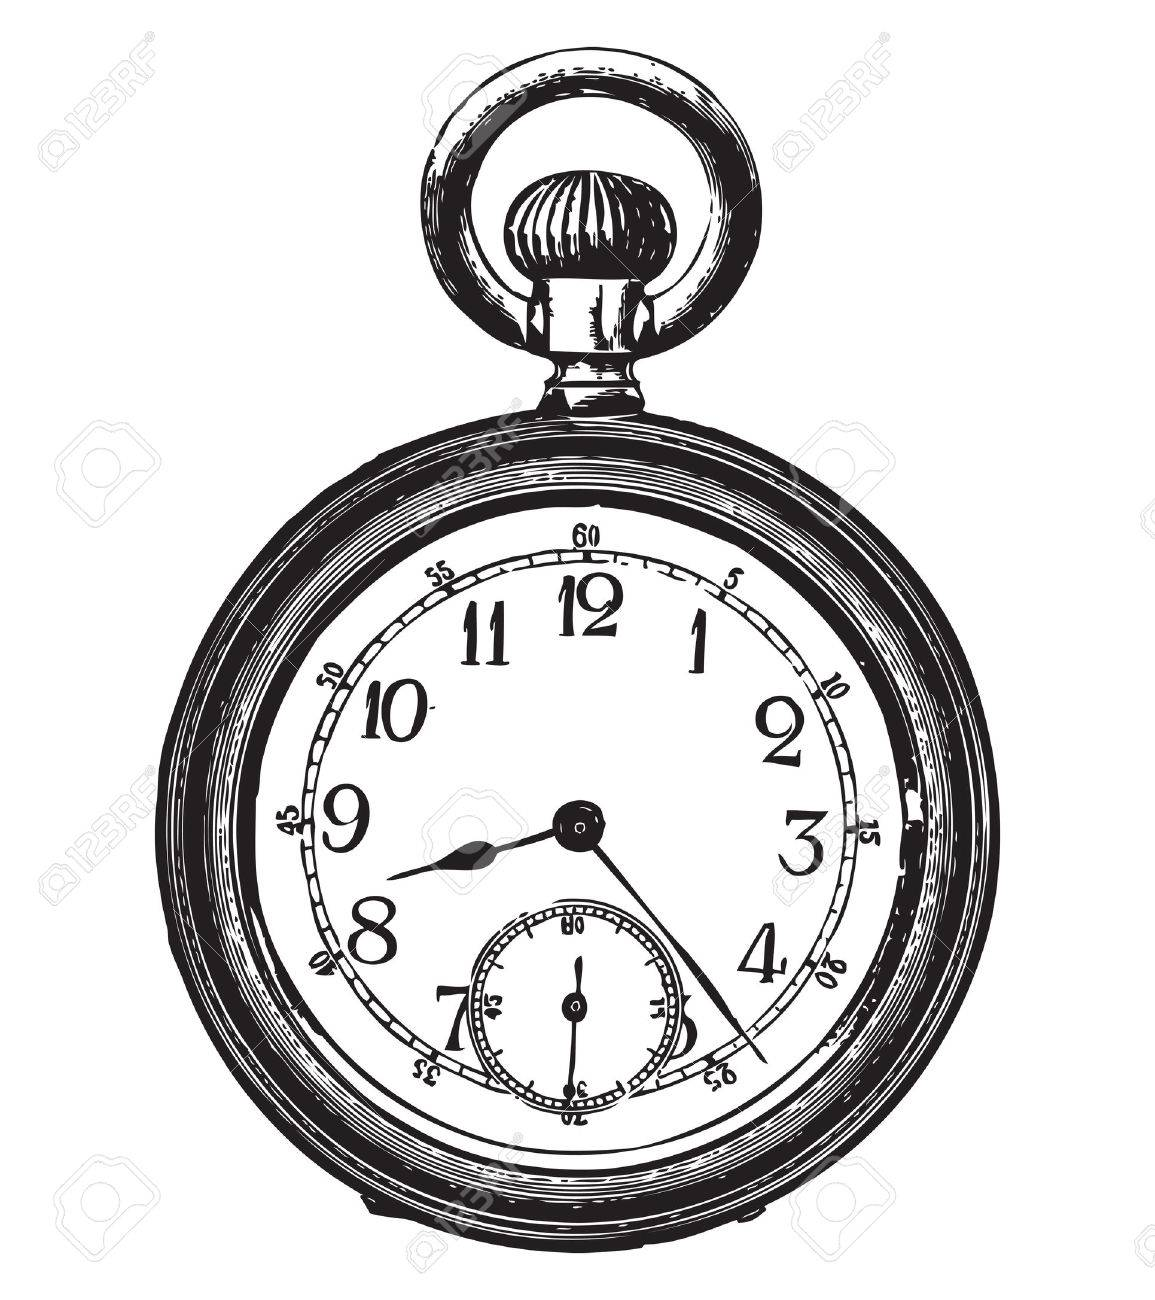 1155x1300 Collection Of Old Pocket Watch Clipart High Quality, Free